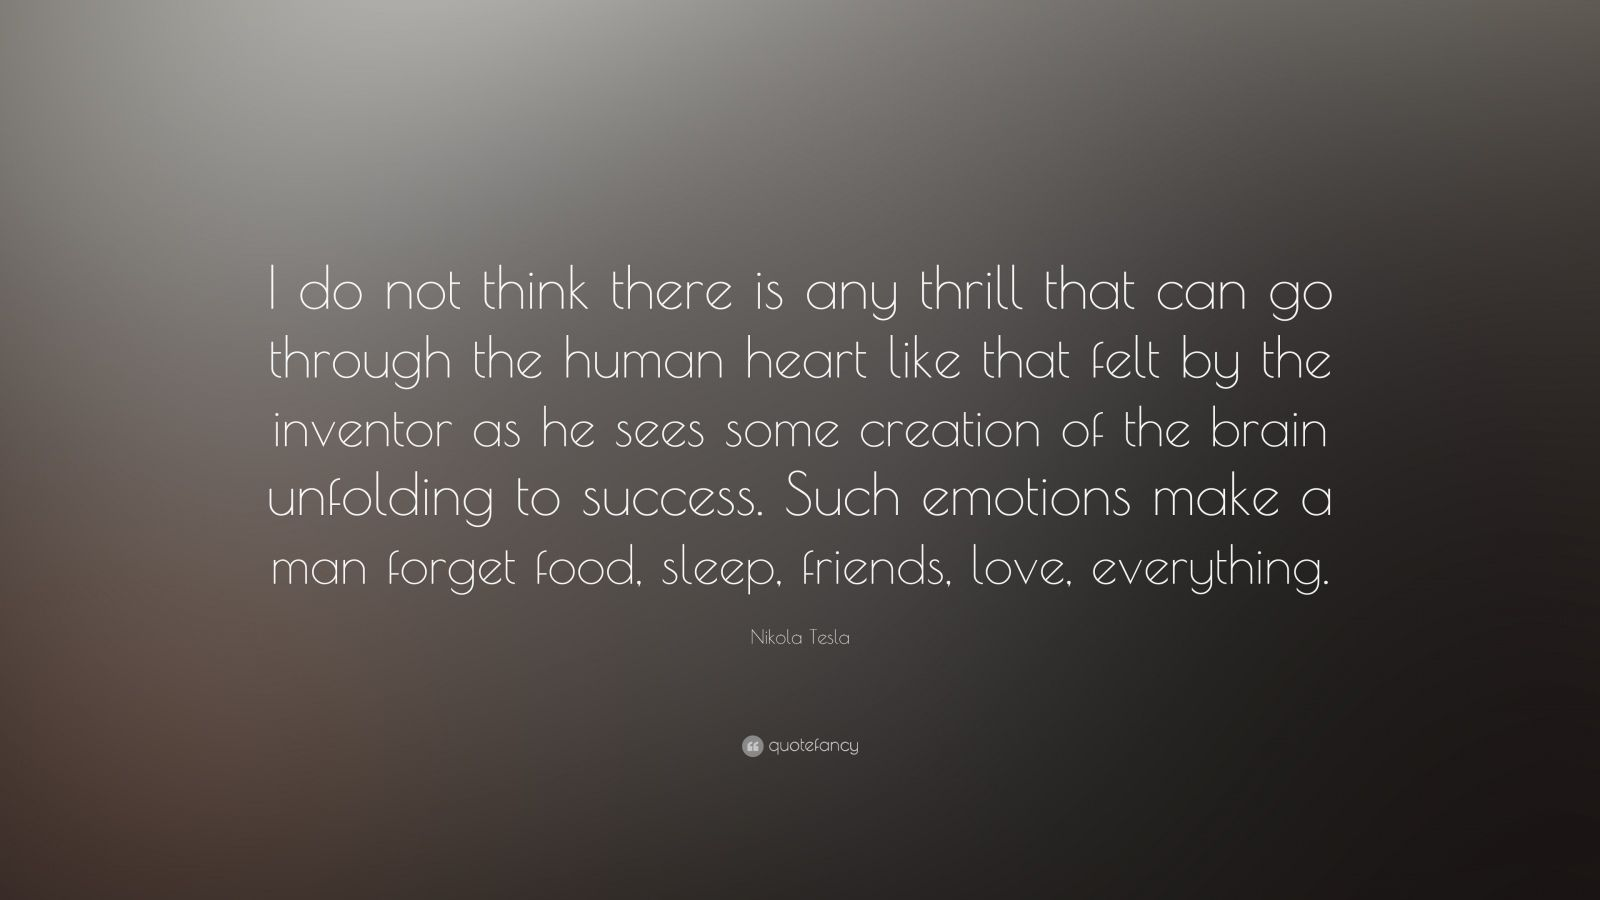 "Nikola Tesla Quote: ""I do not think there is any thrill that can go through the human heart like that felt by the inventor as he sees some creation of the brain unfolding to success. Such emotions make a man forget food, sleep, friends, love, everything."""